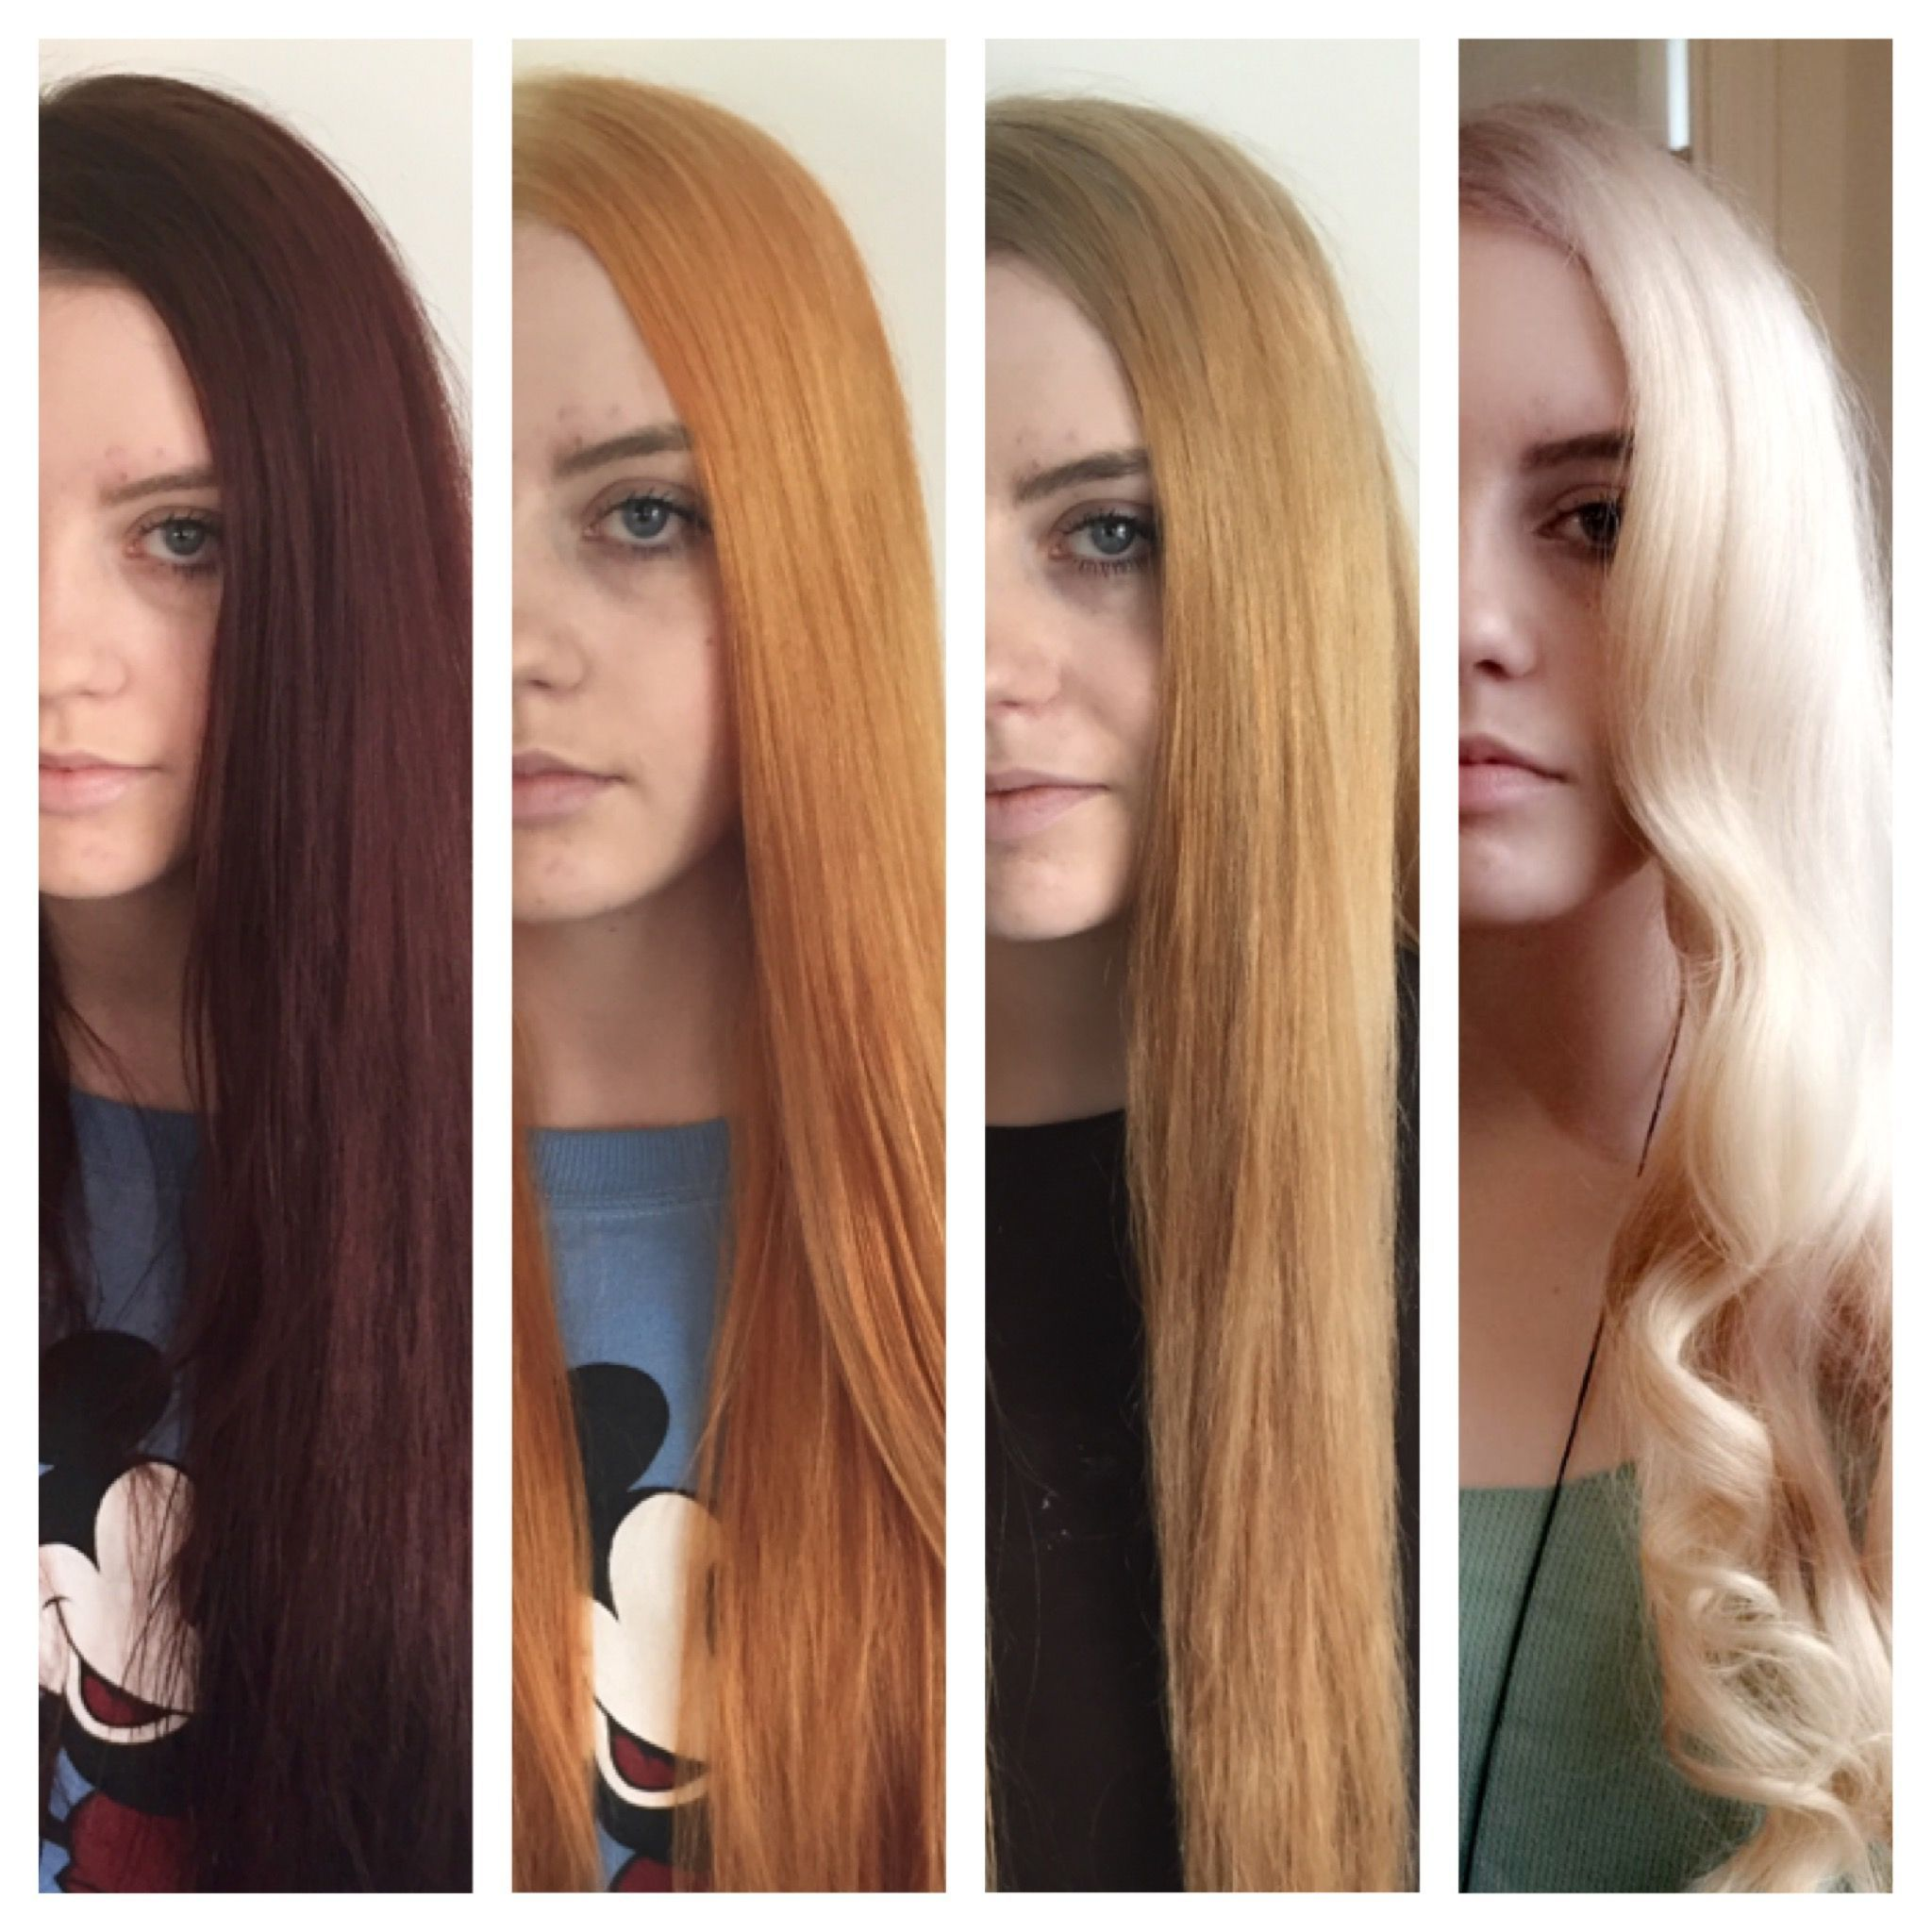 shocking-week-journey-dark-red-to-platinum-career-light-of-how-dye-bleached-hair-brown-popular-and-putting-on-inspiration.jpg